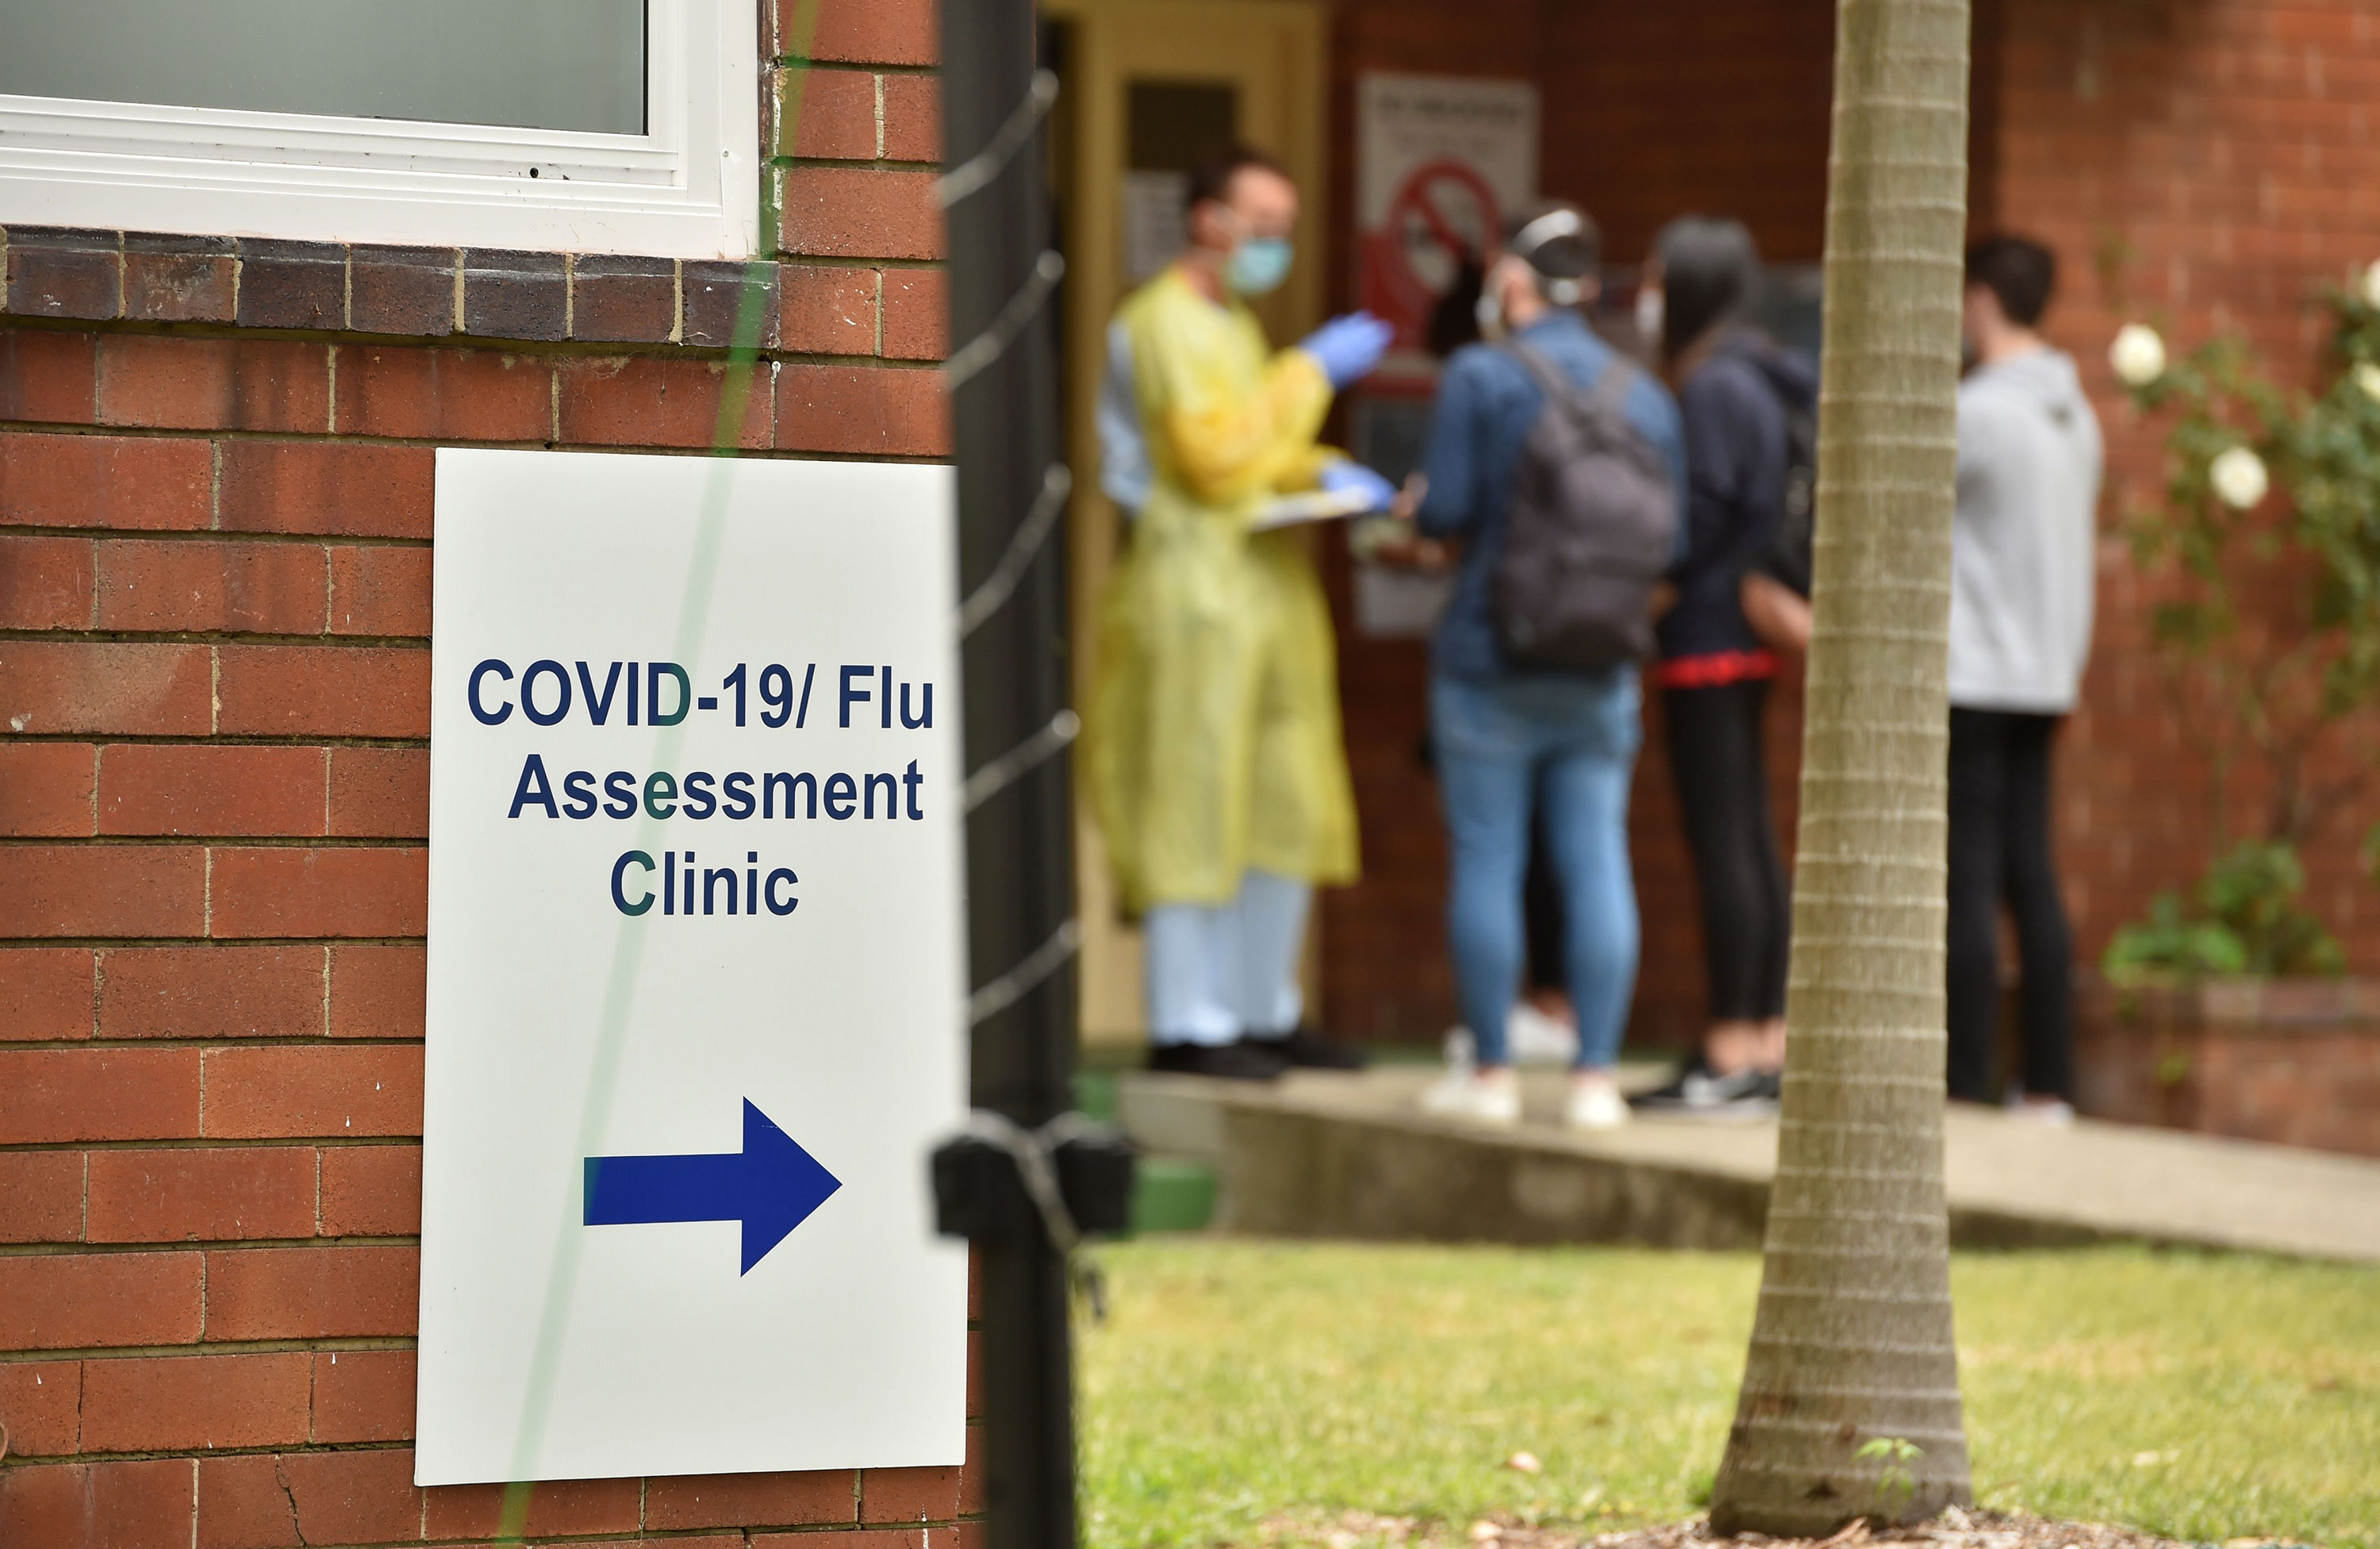 A health worker assists visitors at a Covid-19 testing center in Sydney on March 23.